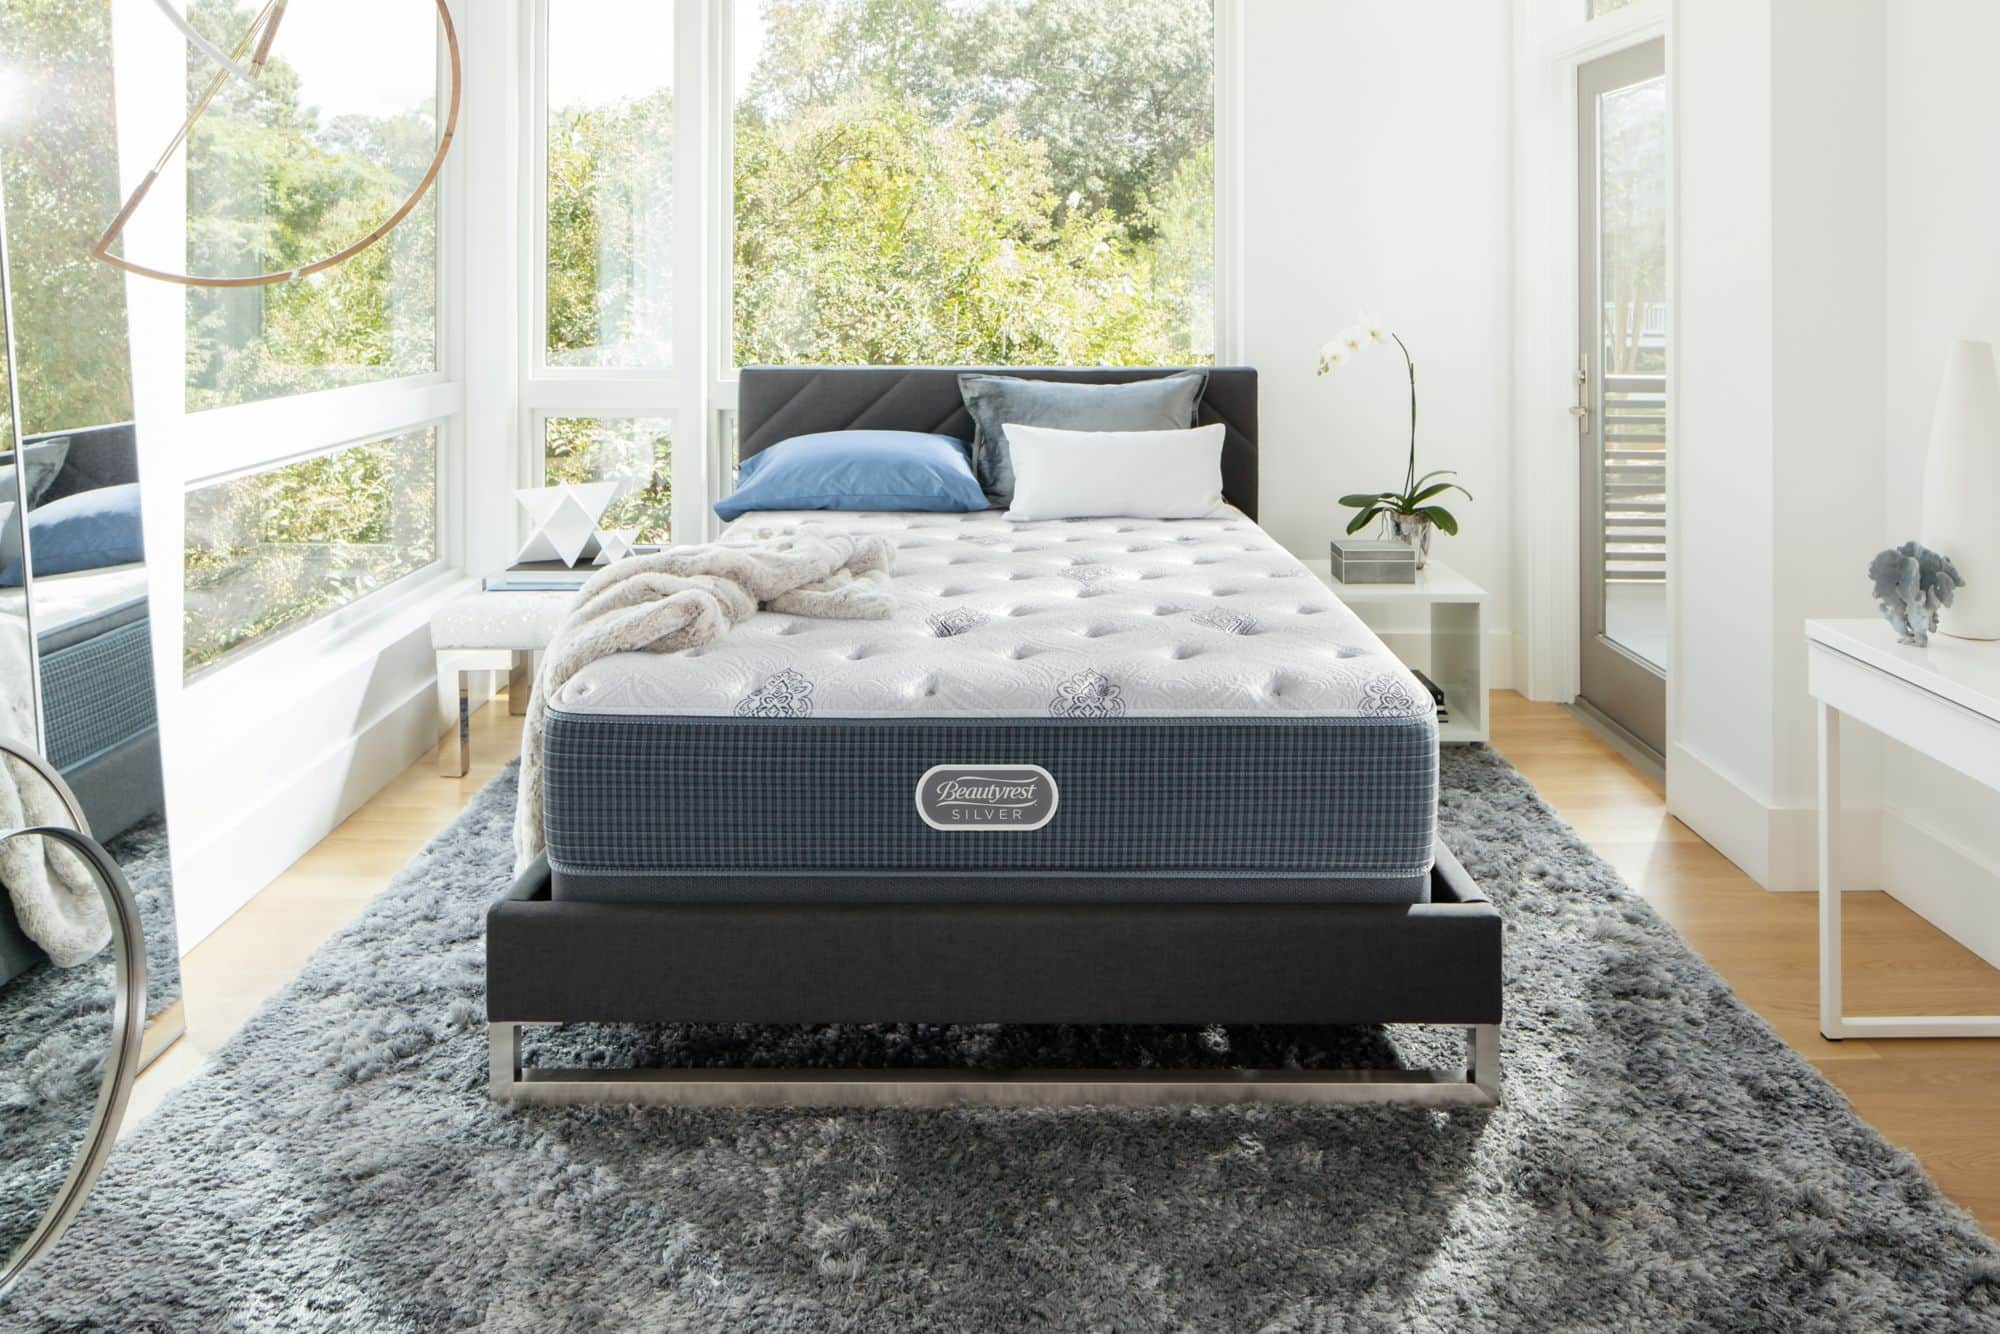 Us Mattress President S Day Coupon Codes For Up To 55 Off Mattresses Free Blanket Pillow Deals Live 2 14 At 9am Est 389